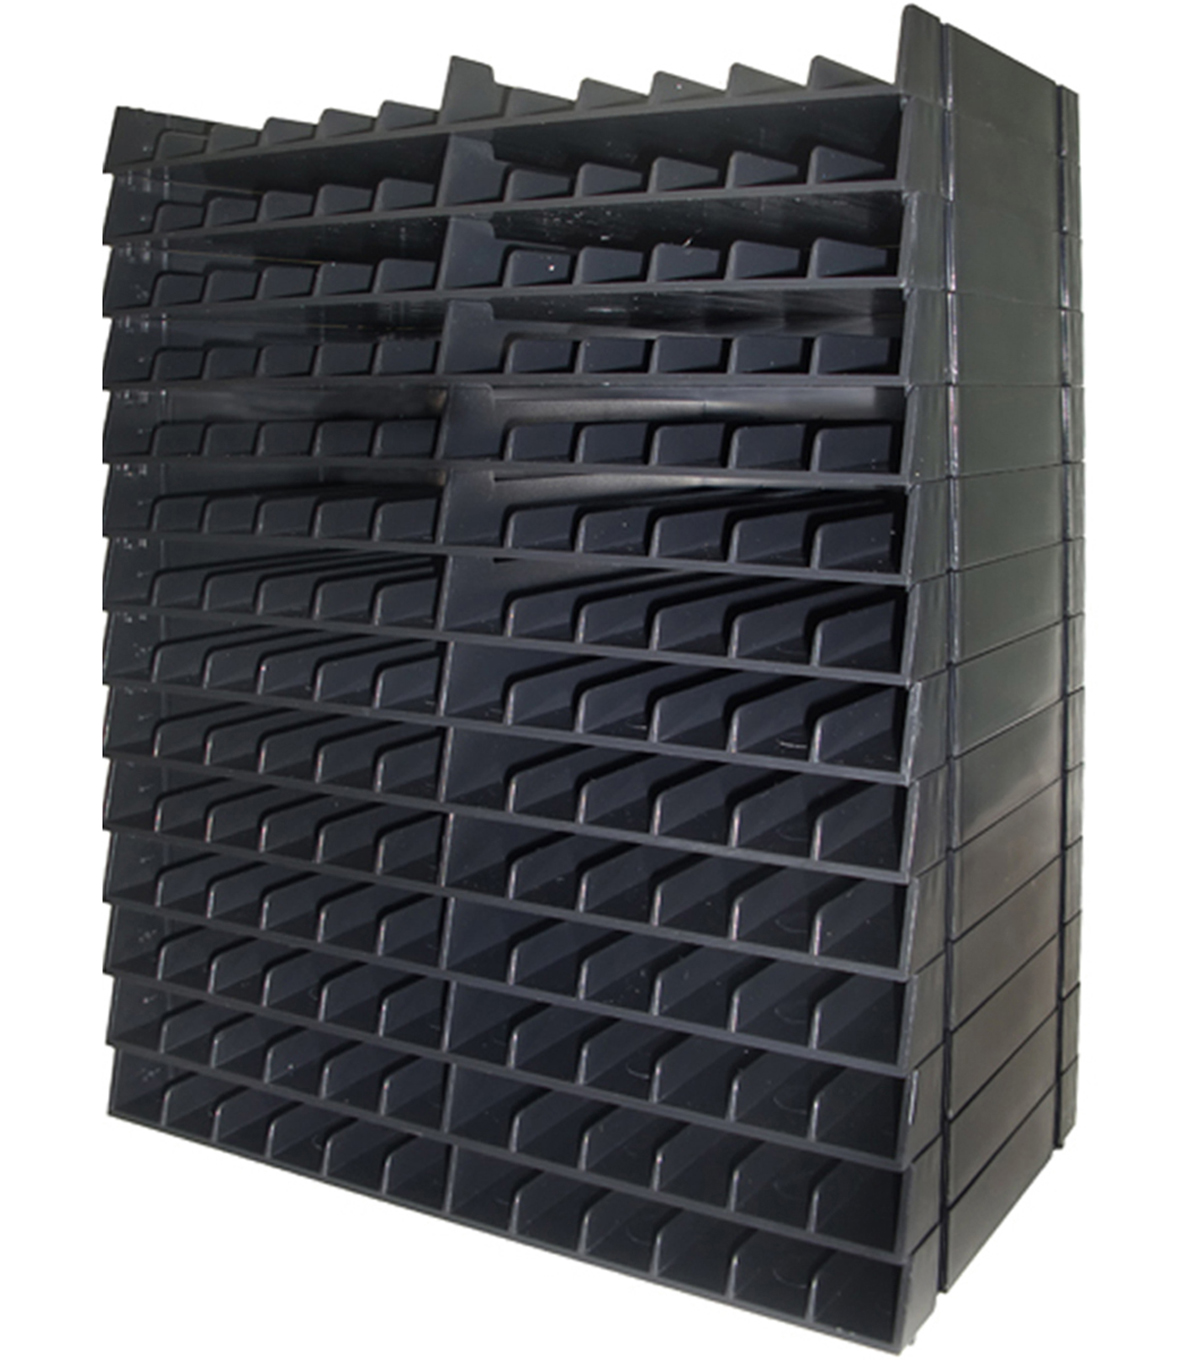 Storage Racks Spectrum Noir Marker Storage Racks Holds 168 Black